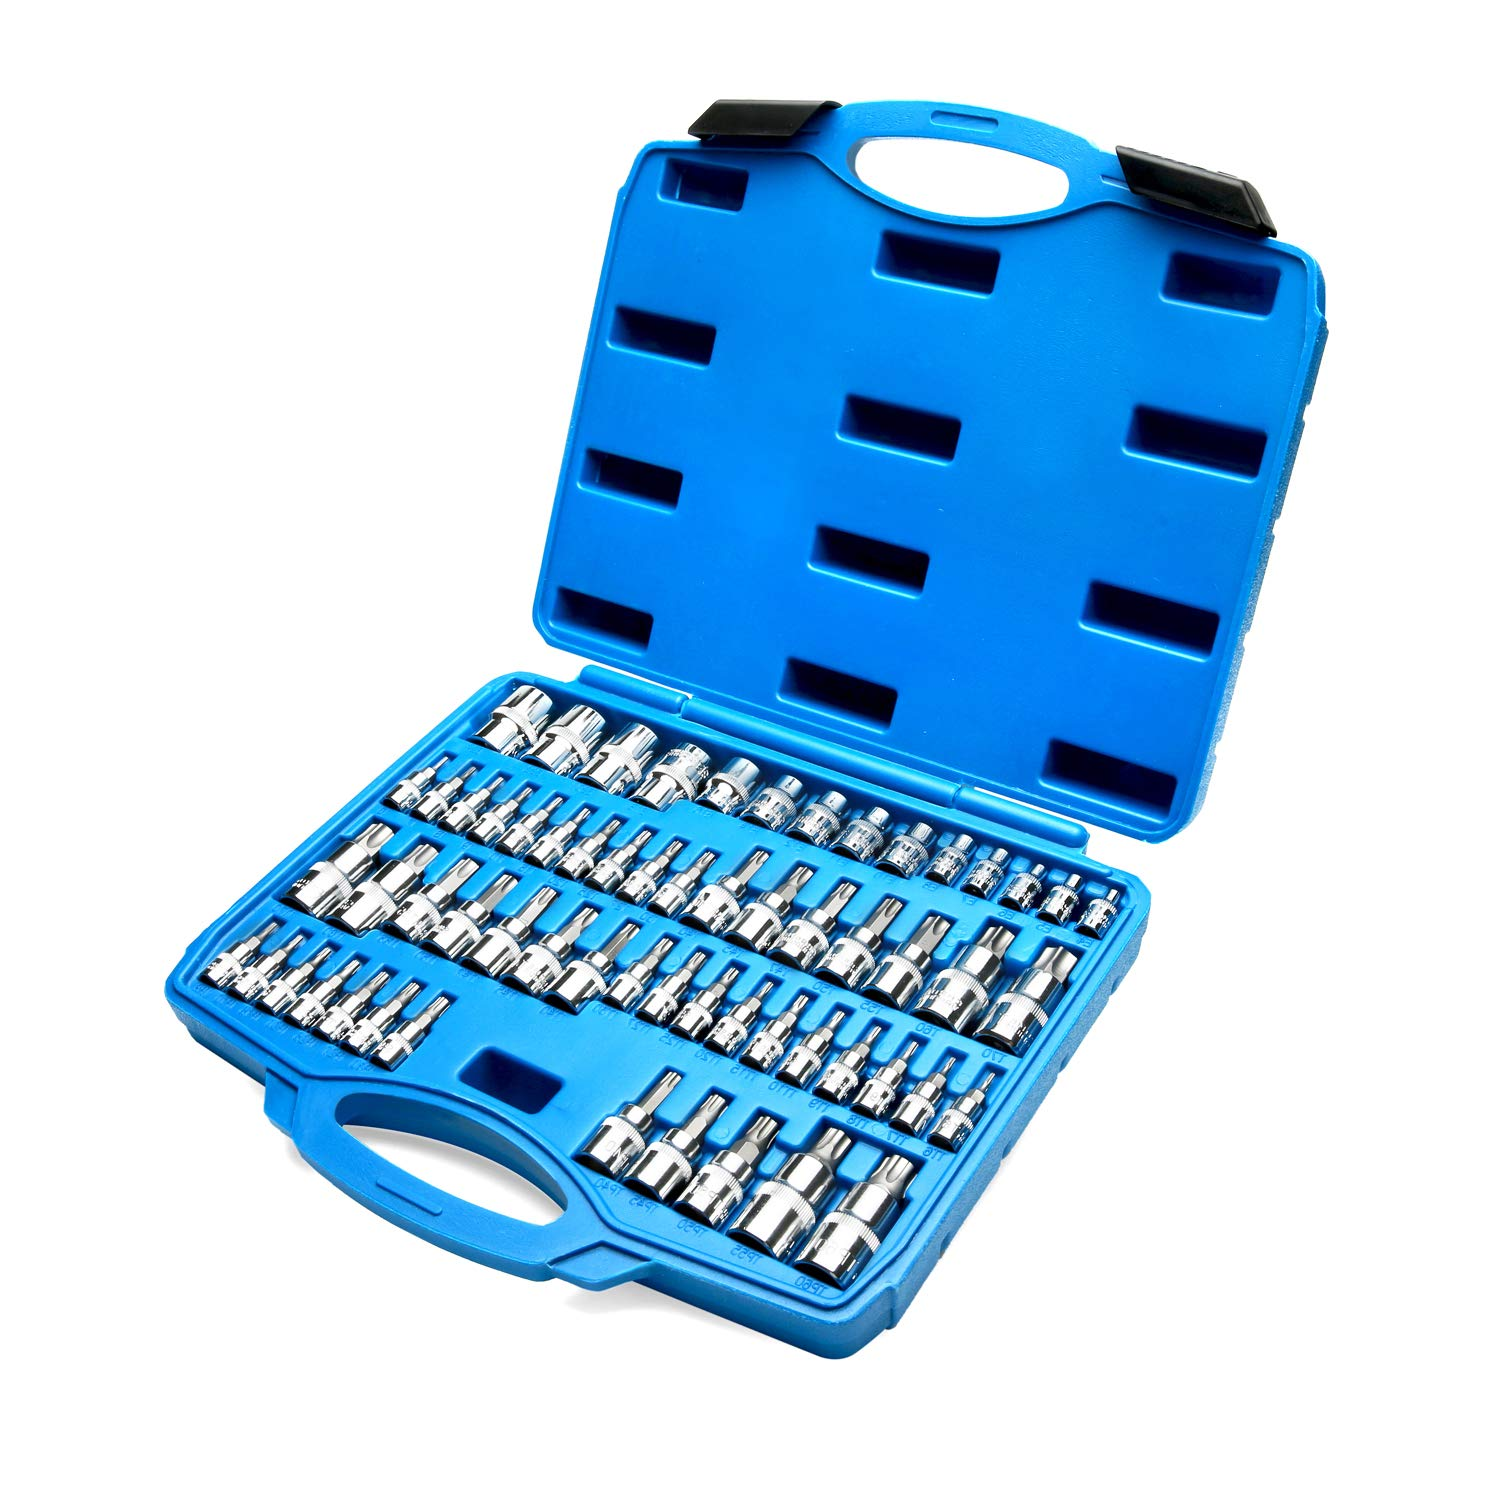 Torx Bit Socket Set and External Star Socket Set, 1/4Inch 3/8Inch 1/2 Inch Drive, S2 and Cr-V Steel, 60 Piece by Renekton